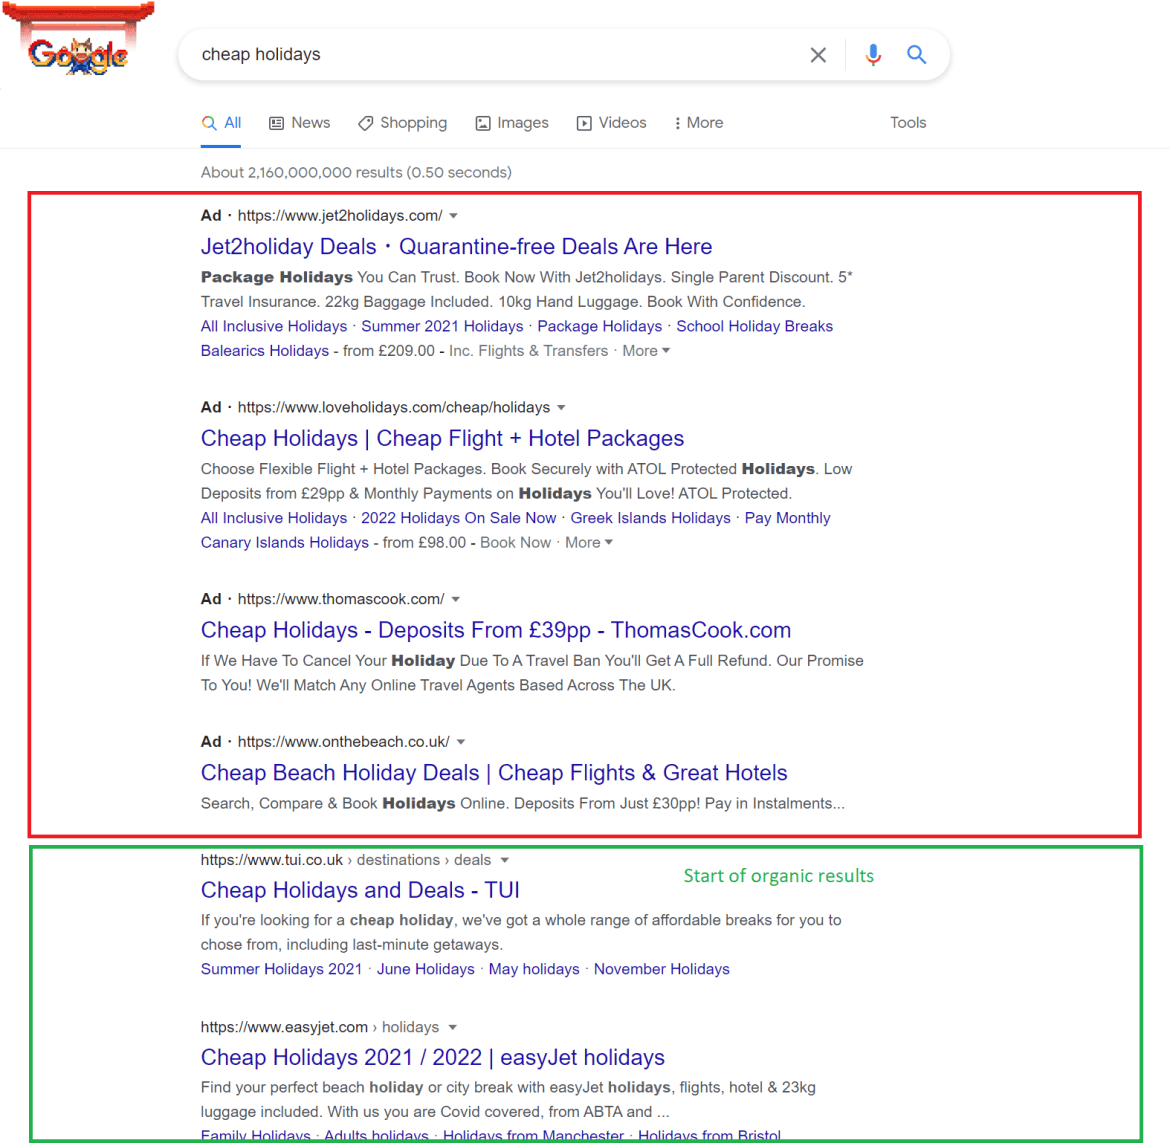 Image highlighting ads at the top of Google search results, with the organic results below them